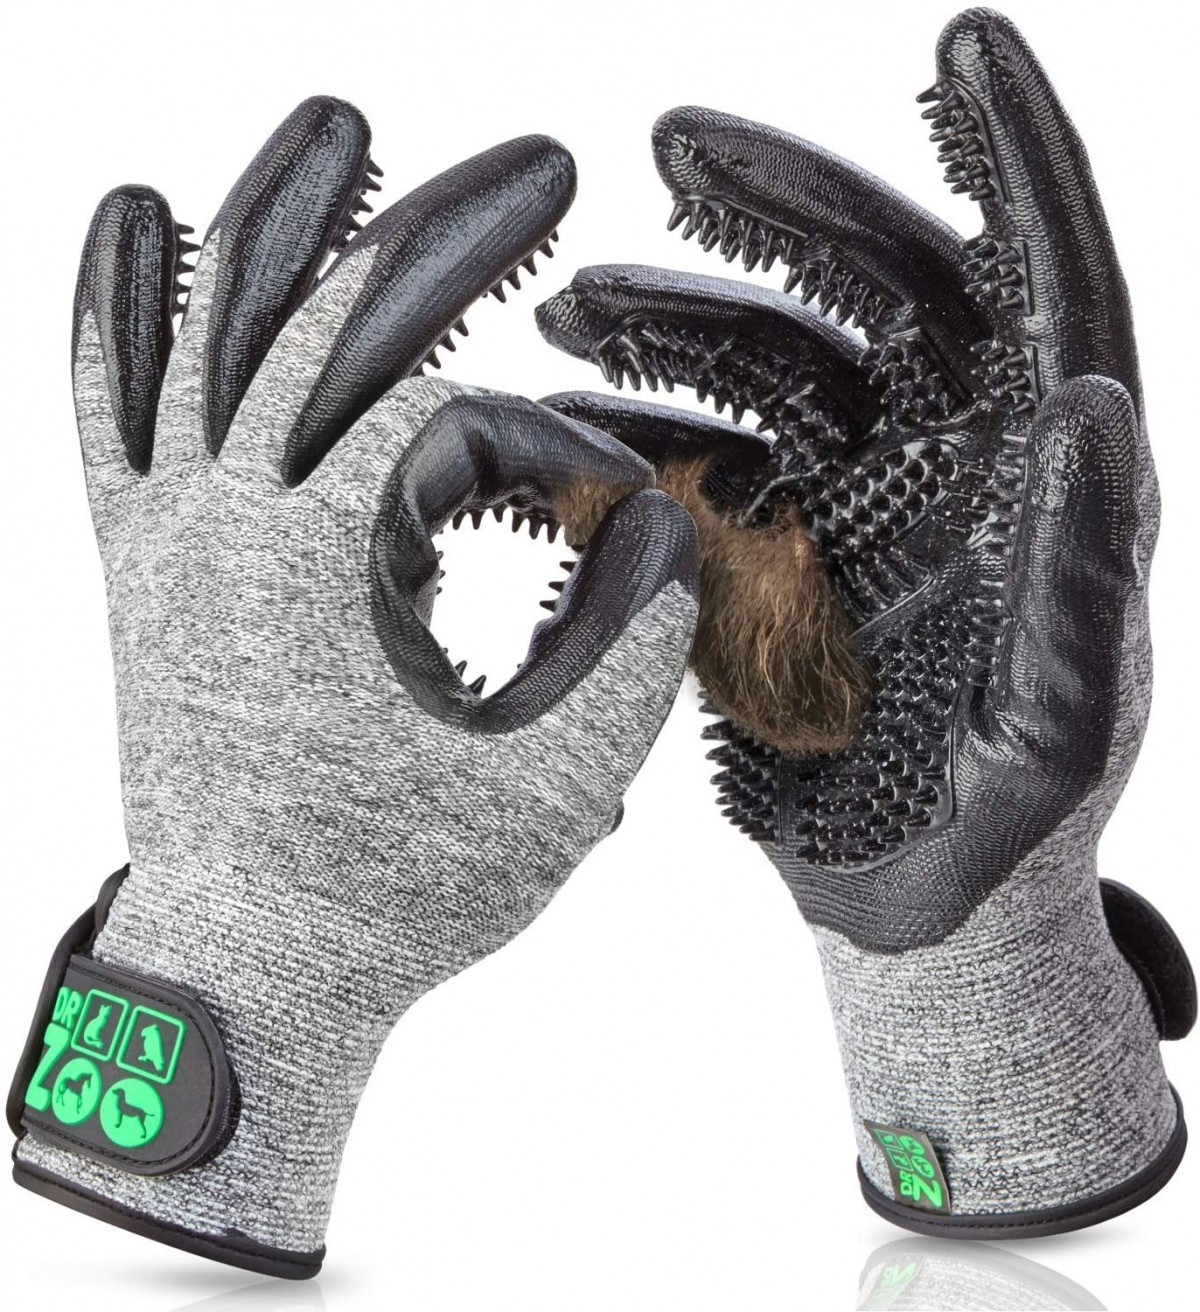 Grooming Glove/Brush